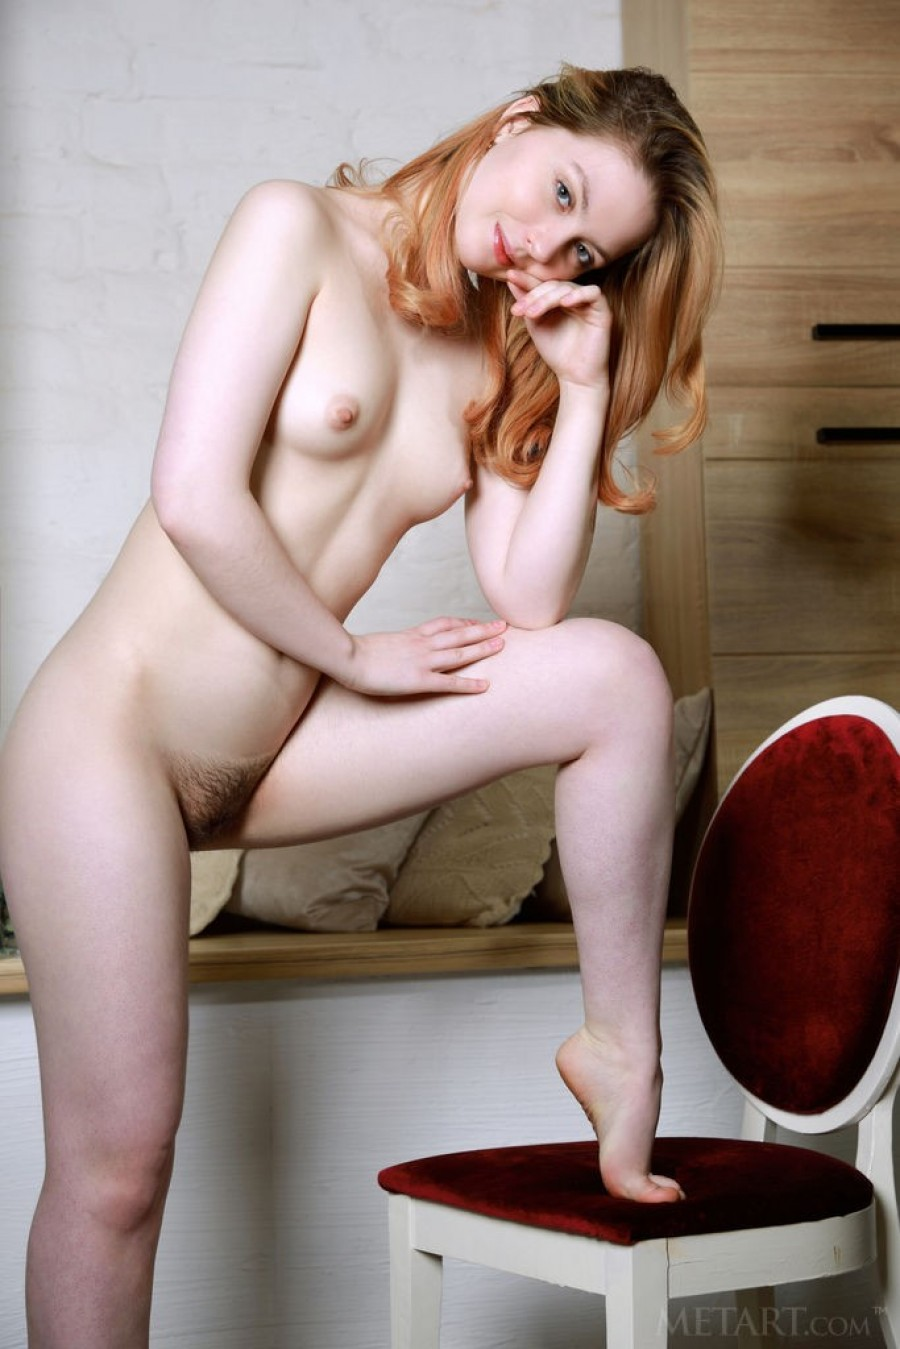 Horny redhead playing on her computer